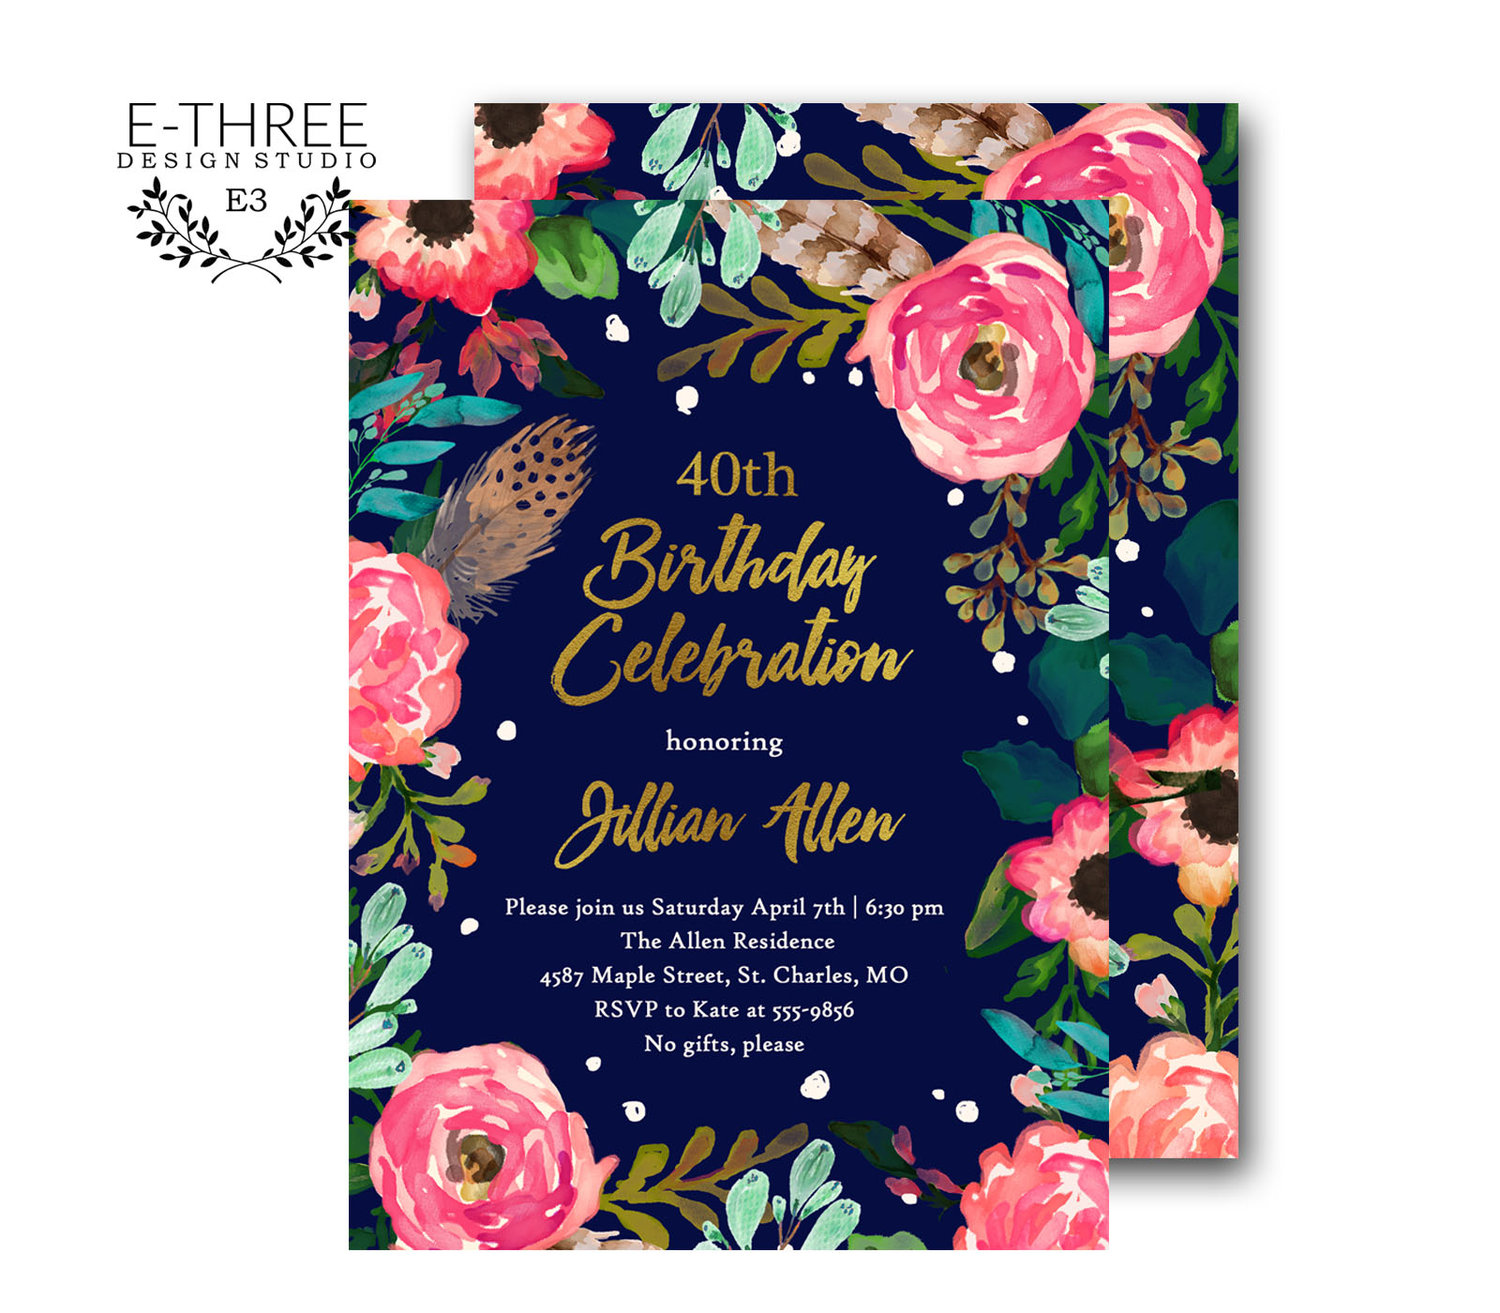 Floral Birthday Party Invitation - Adult Birthday Party Invite - Pink, Turquoise, Navy, Gold, Mint - 40th Birthday